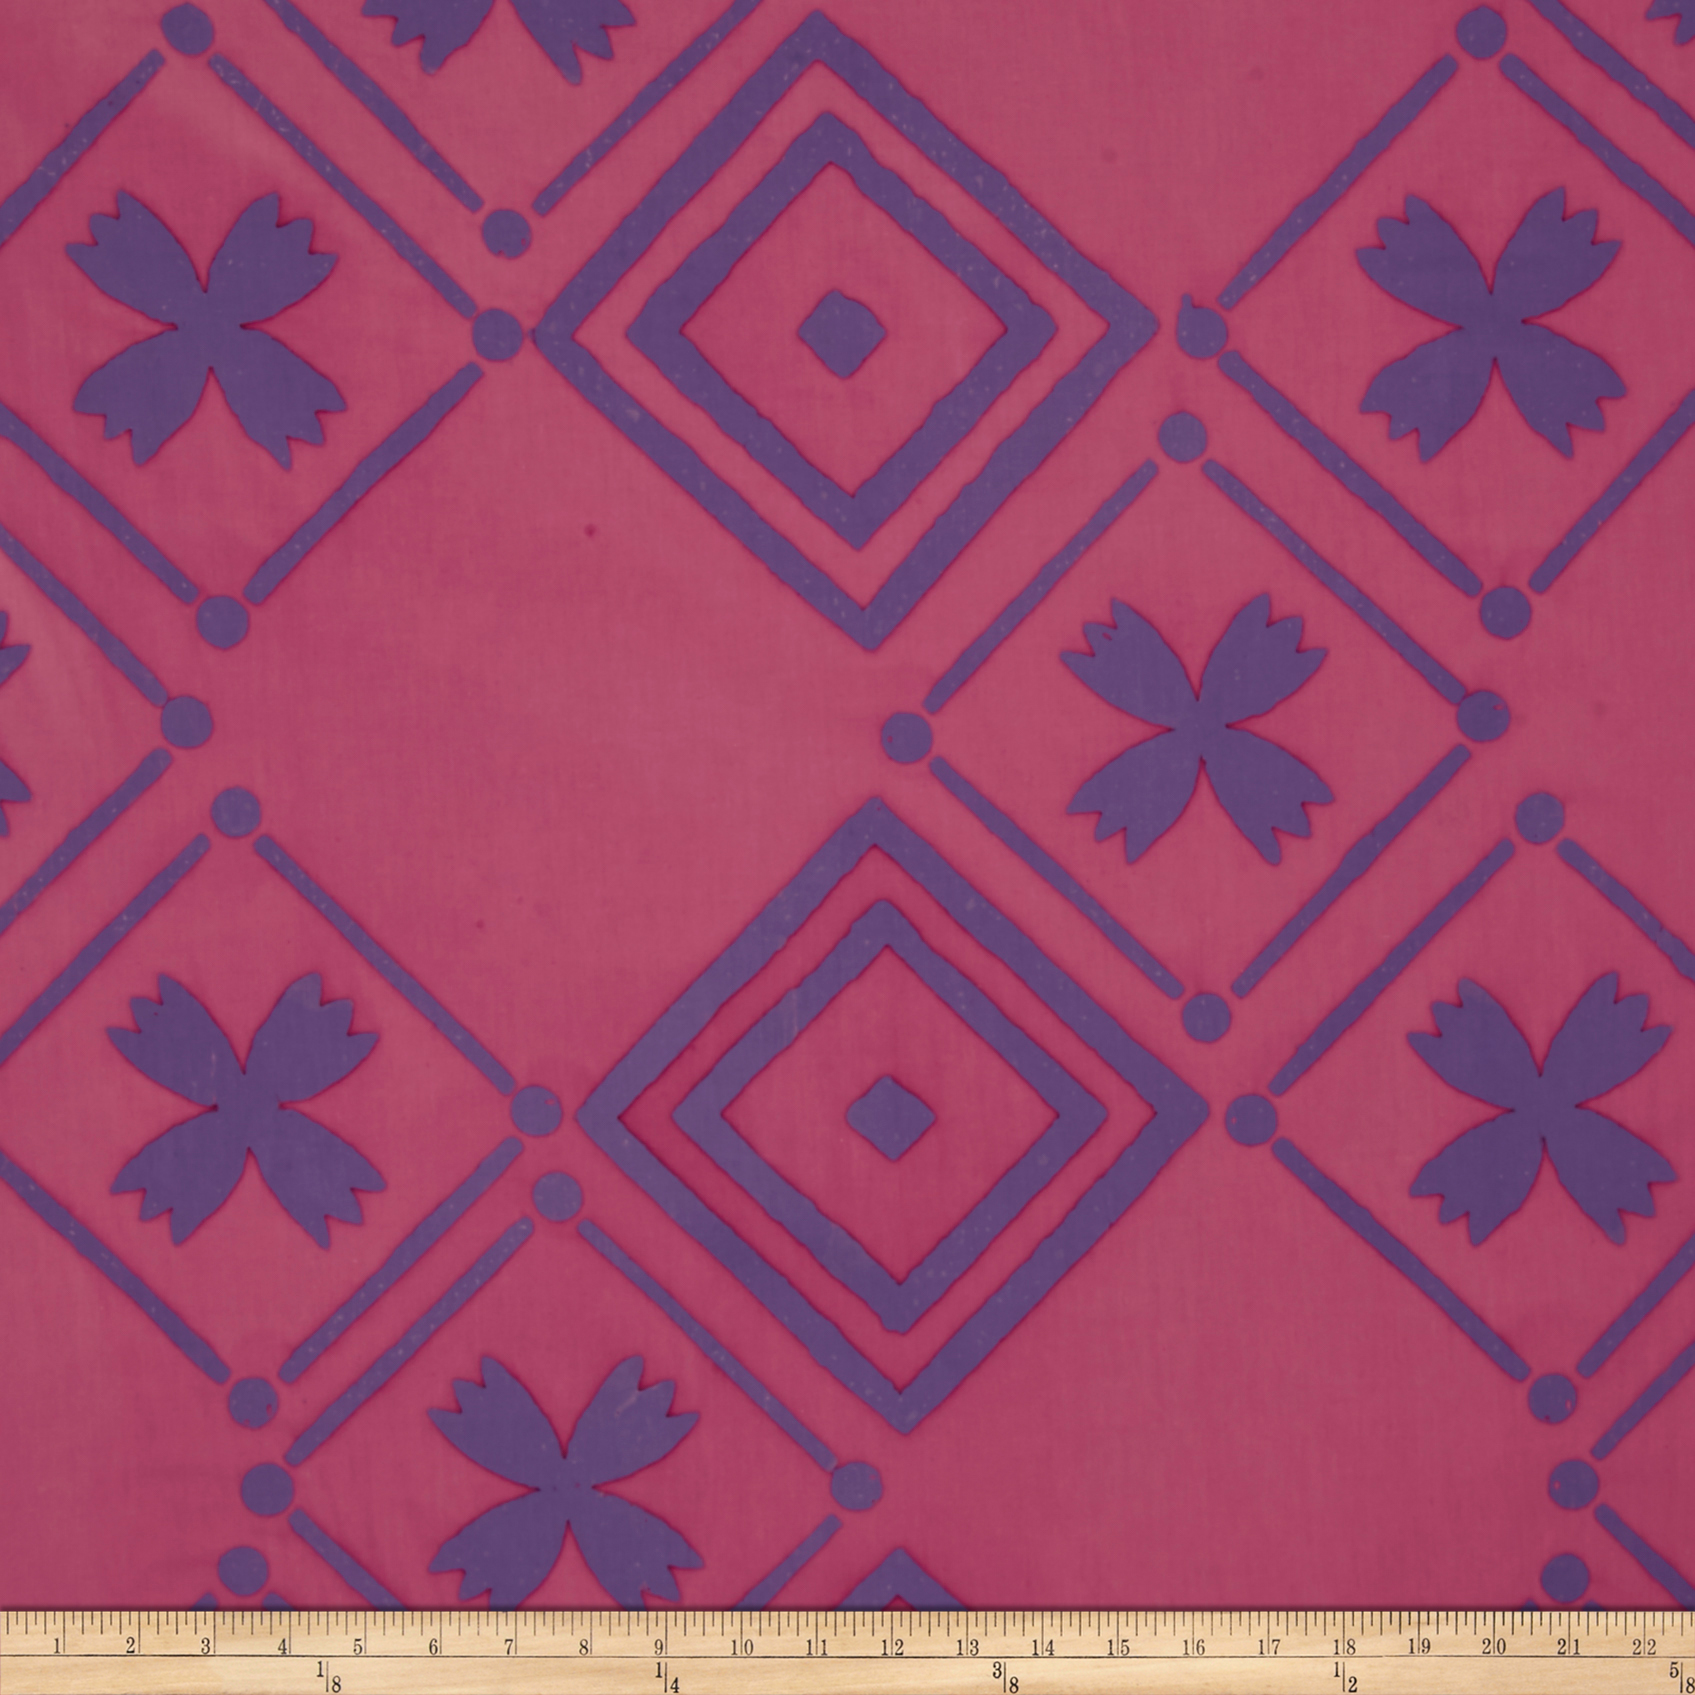 Image of Alison Glass Handcrafted Patchwork Batik Tile Foxglove Pink Fabric